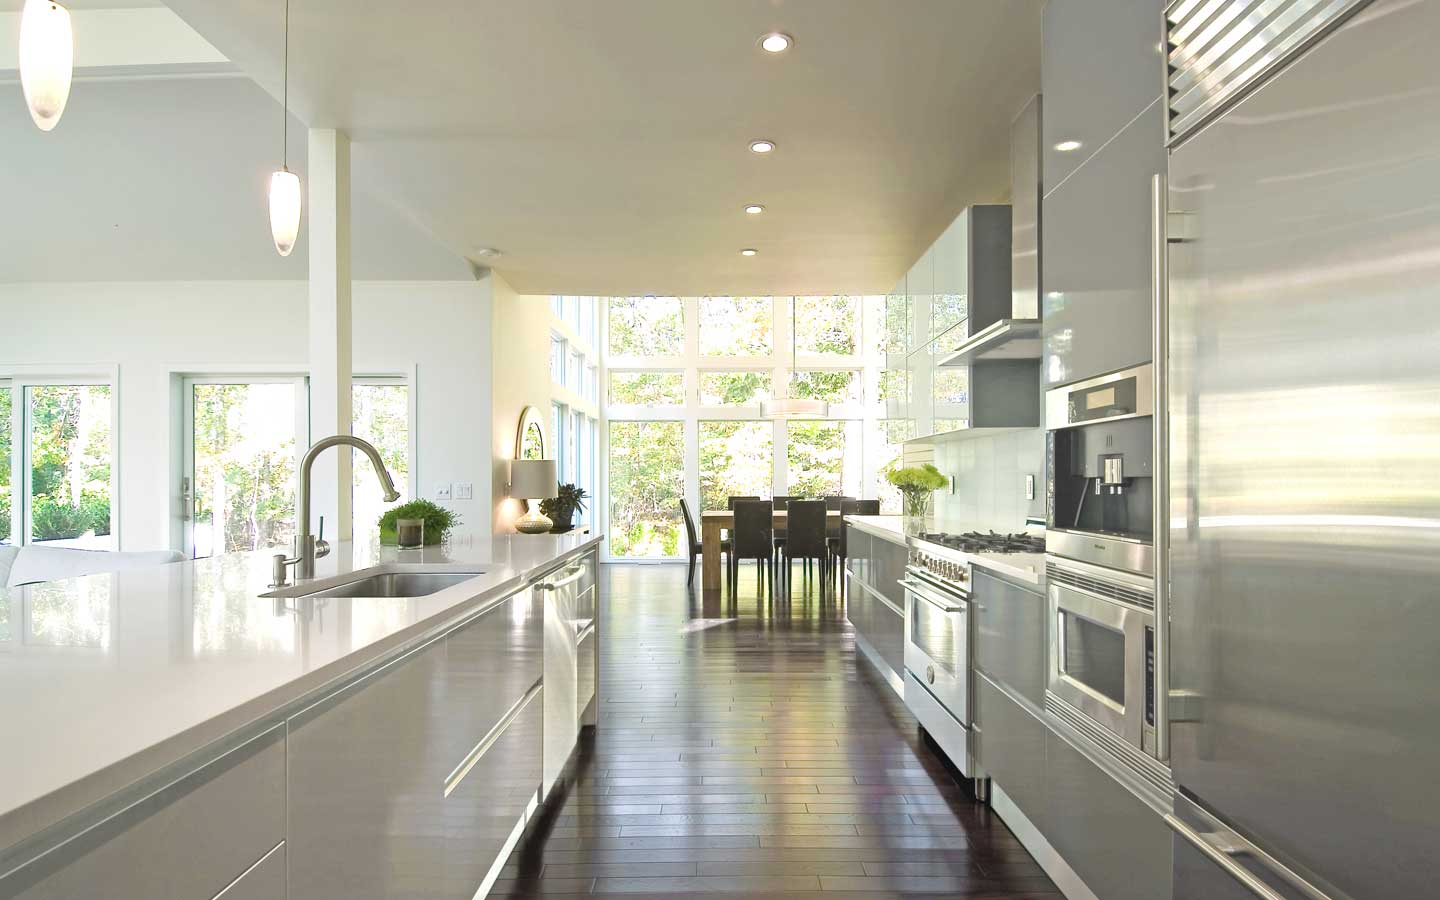 Hampton_Design_Interior_Design_East_Hampton_Kitchen_02.jpg